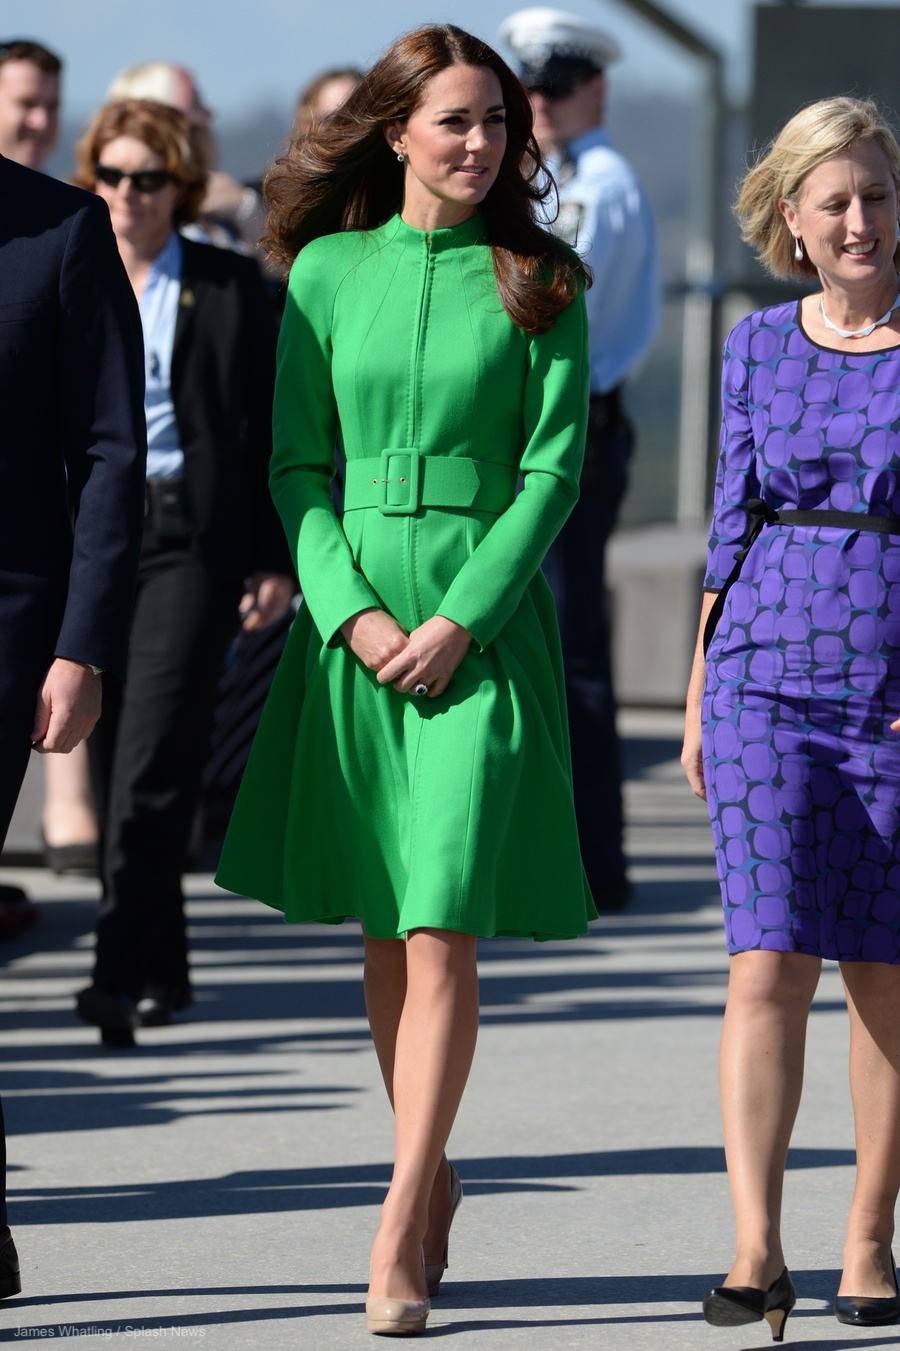 Kate Middleton visiting Canberra, Australia in 2014